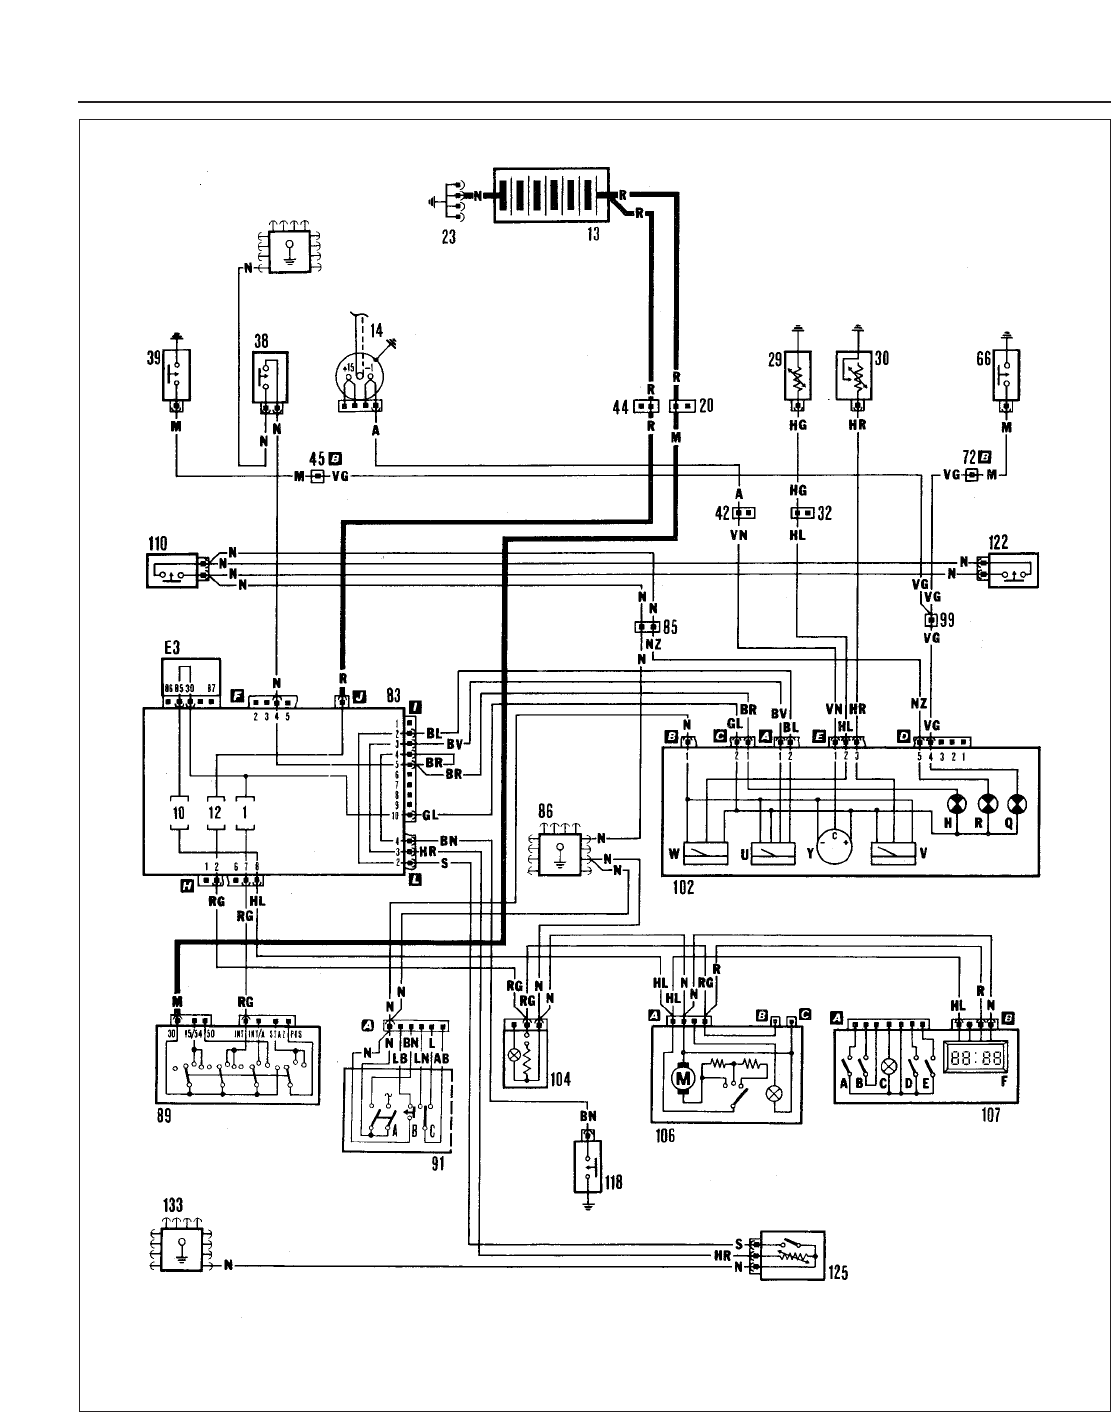 Wiring Diagram For 65 Plymouth 6 Diagrams Images 47 Fiat Ducato 1997